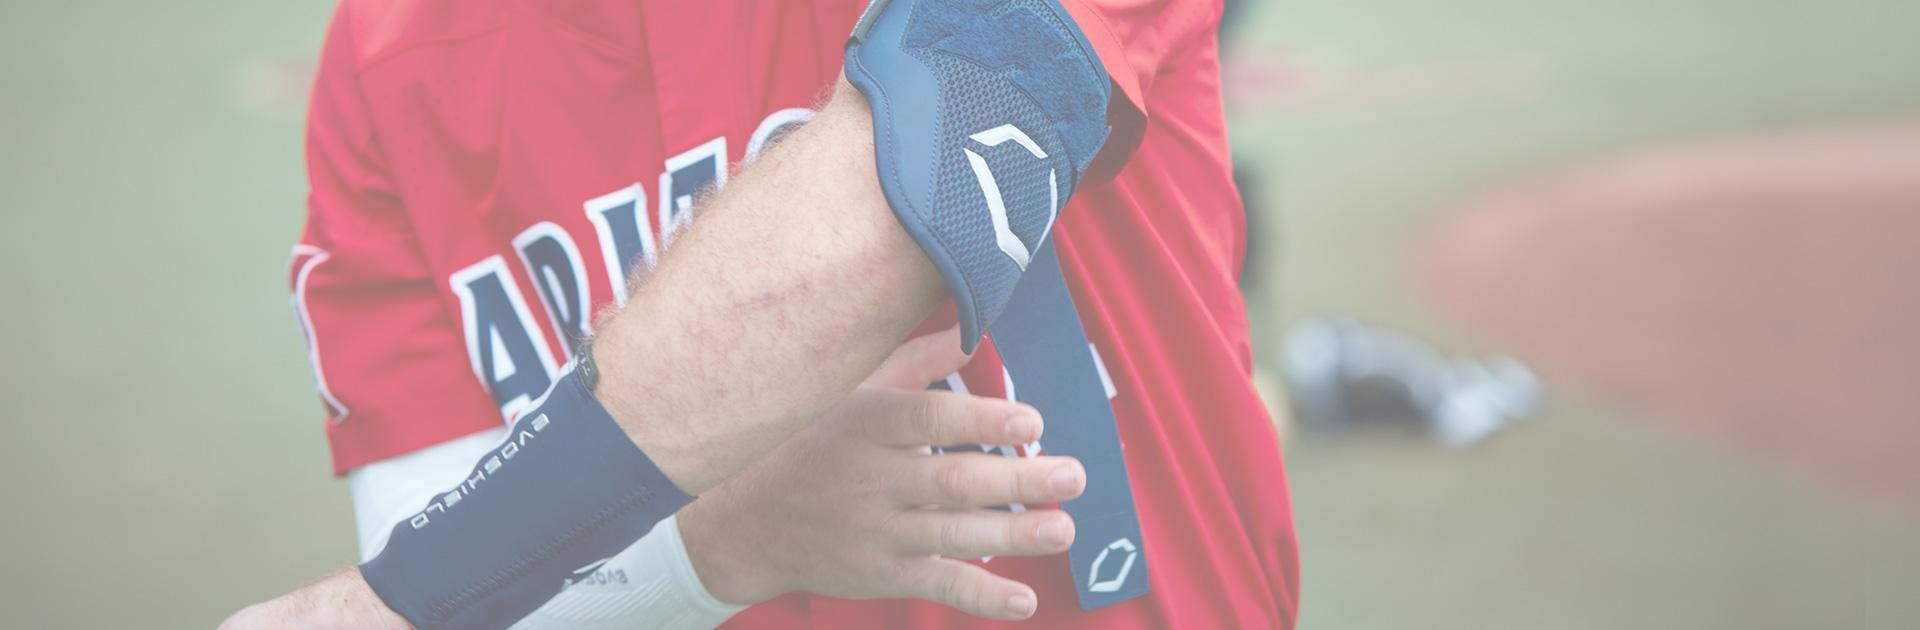 evoshield elbow guard instructions